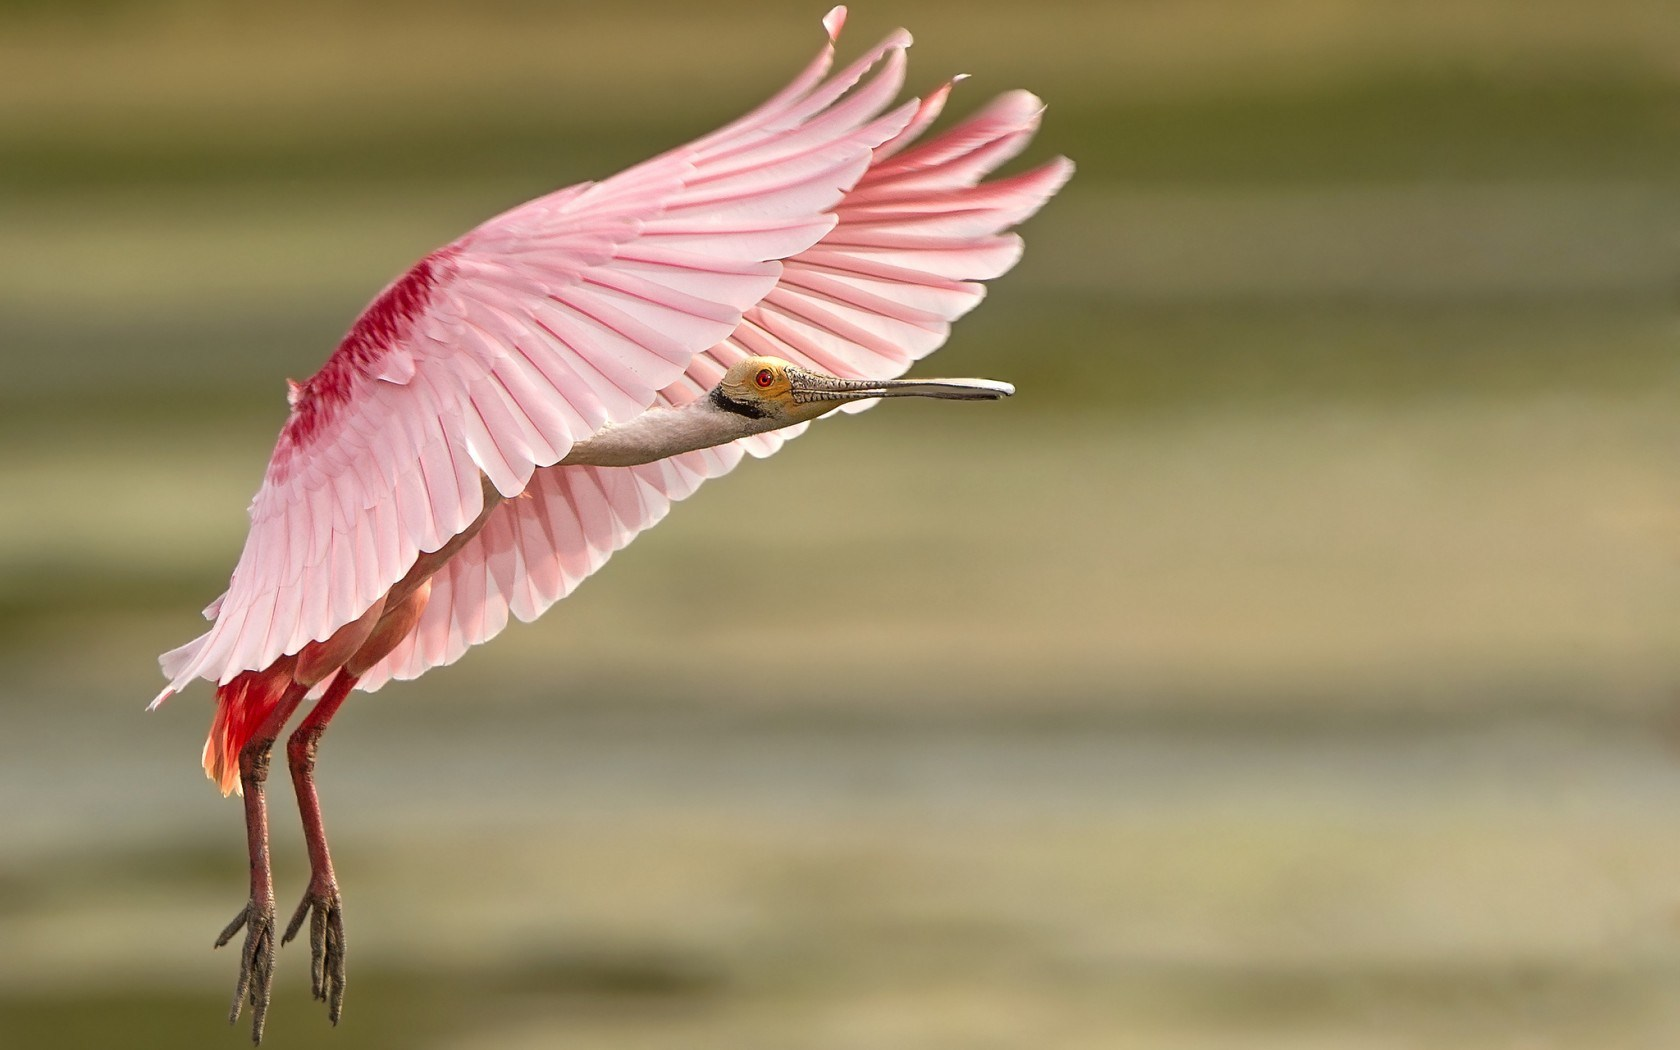 https://i2.wp.com/blog.hdwallsource.com/wp-content/uploads/2016/03/roseate-spoonbill-bird-computer-wallpaper-50733-52425-hd-wallpapers.jpg